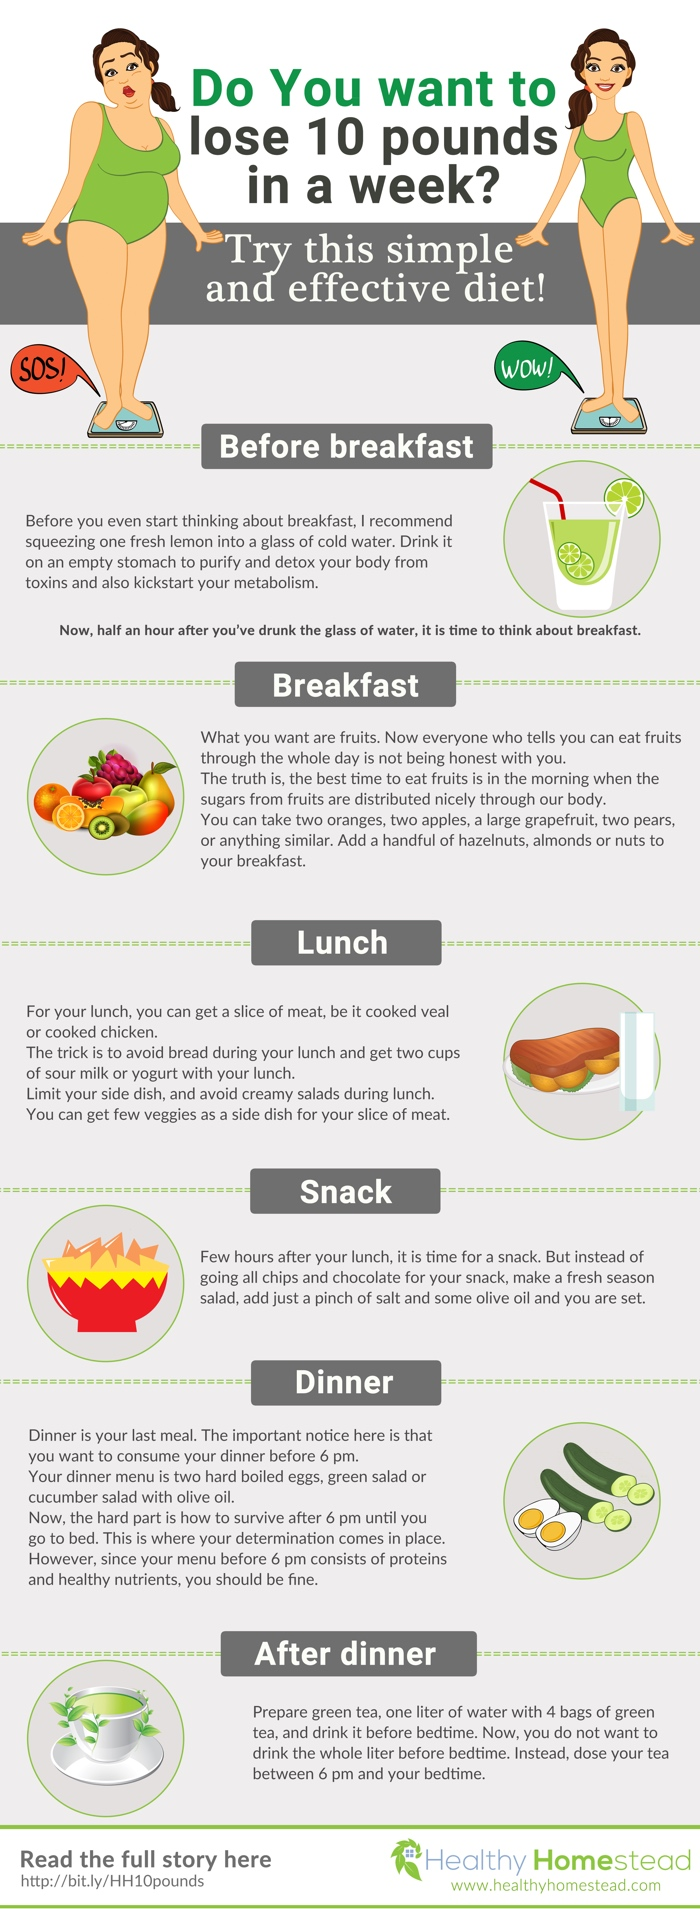 Do You want to lose 10 pounds in a week? Try this simple and effective diet!  @ReTweetNGro